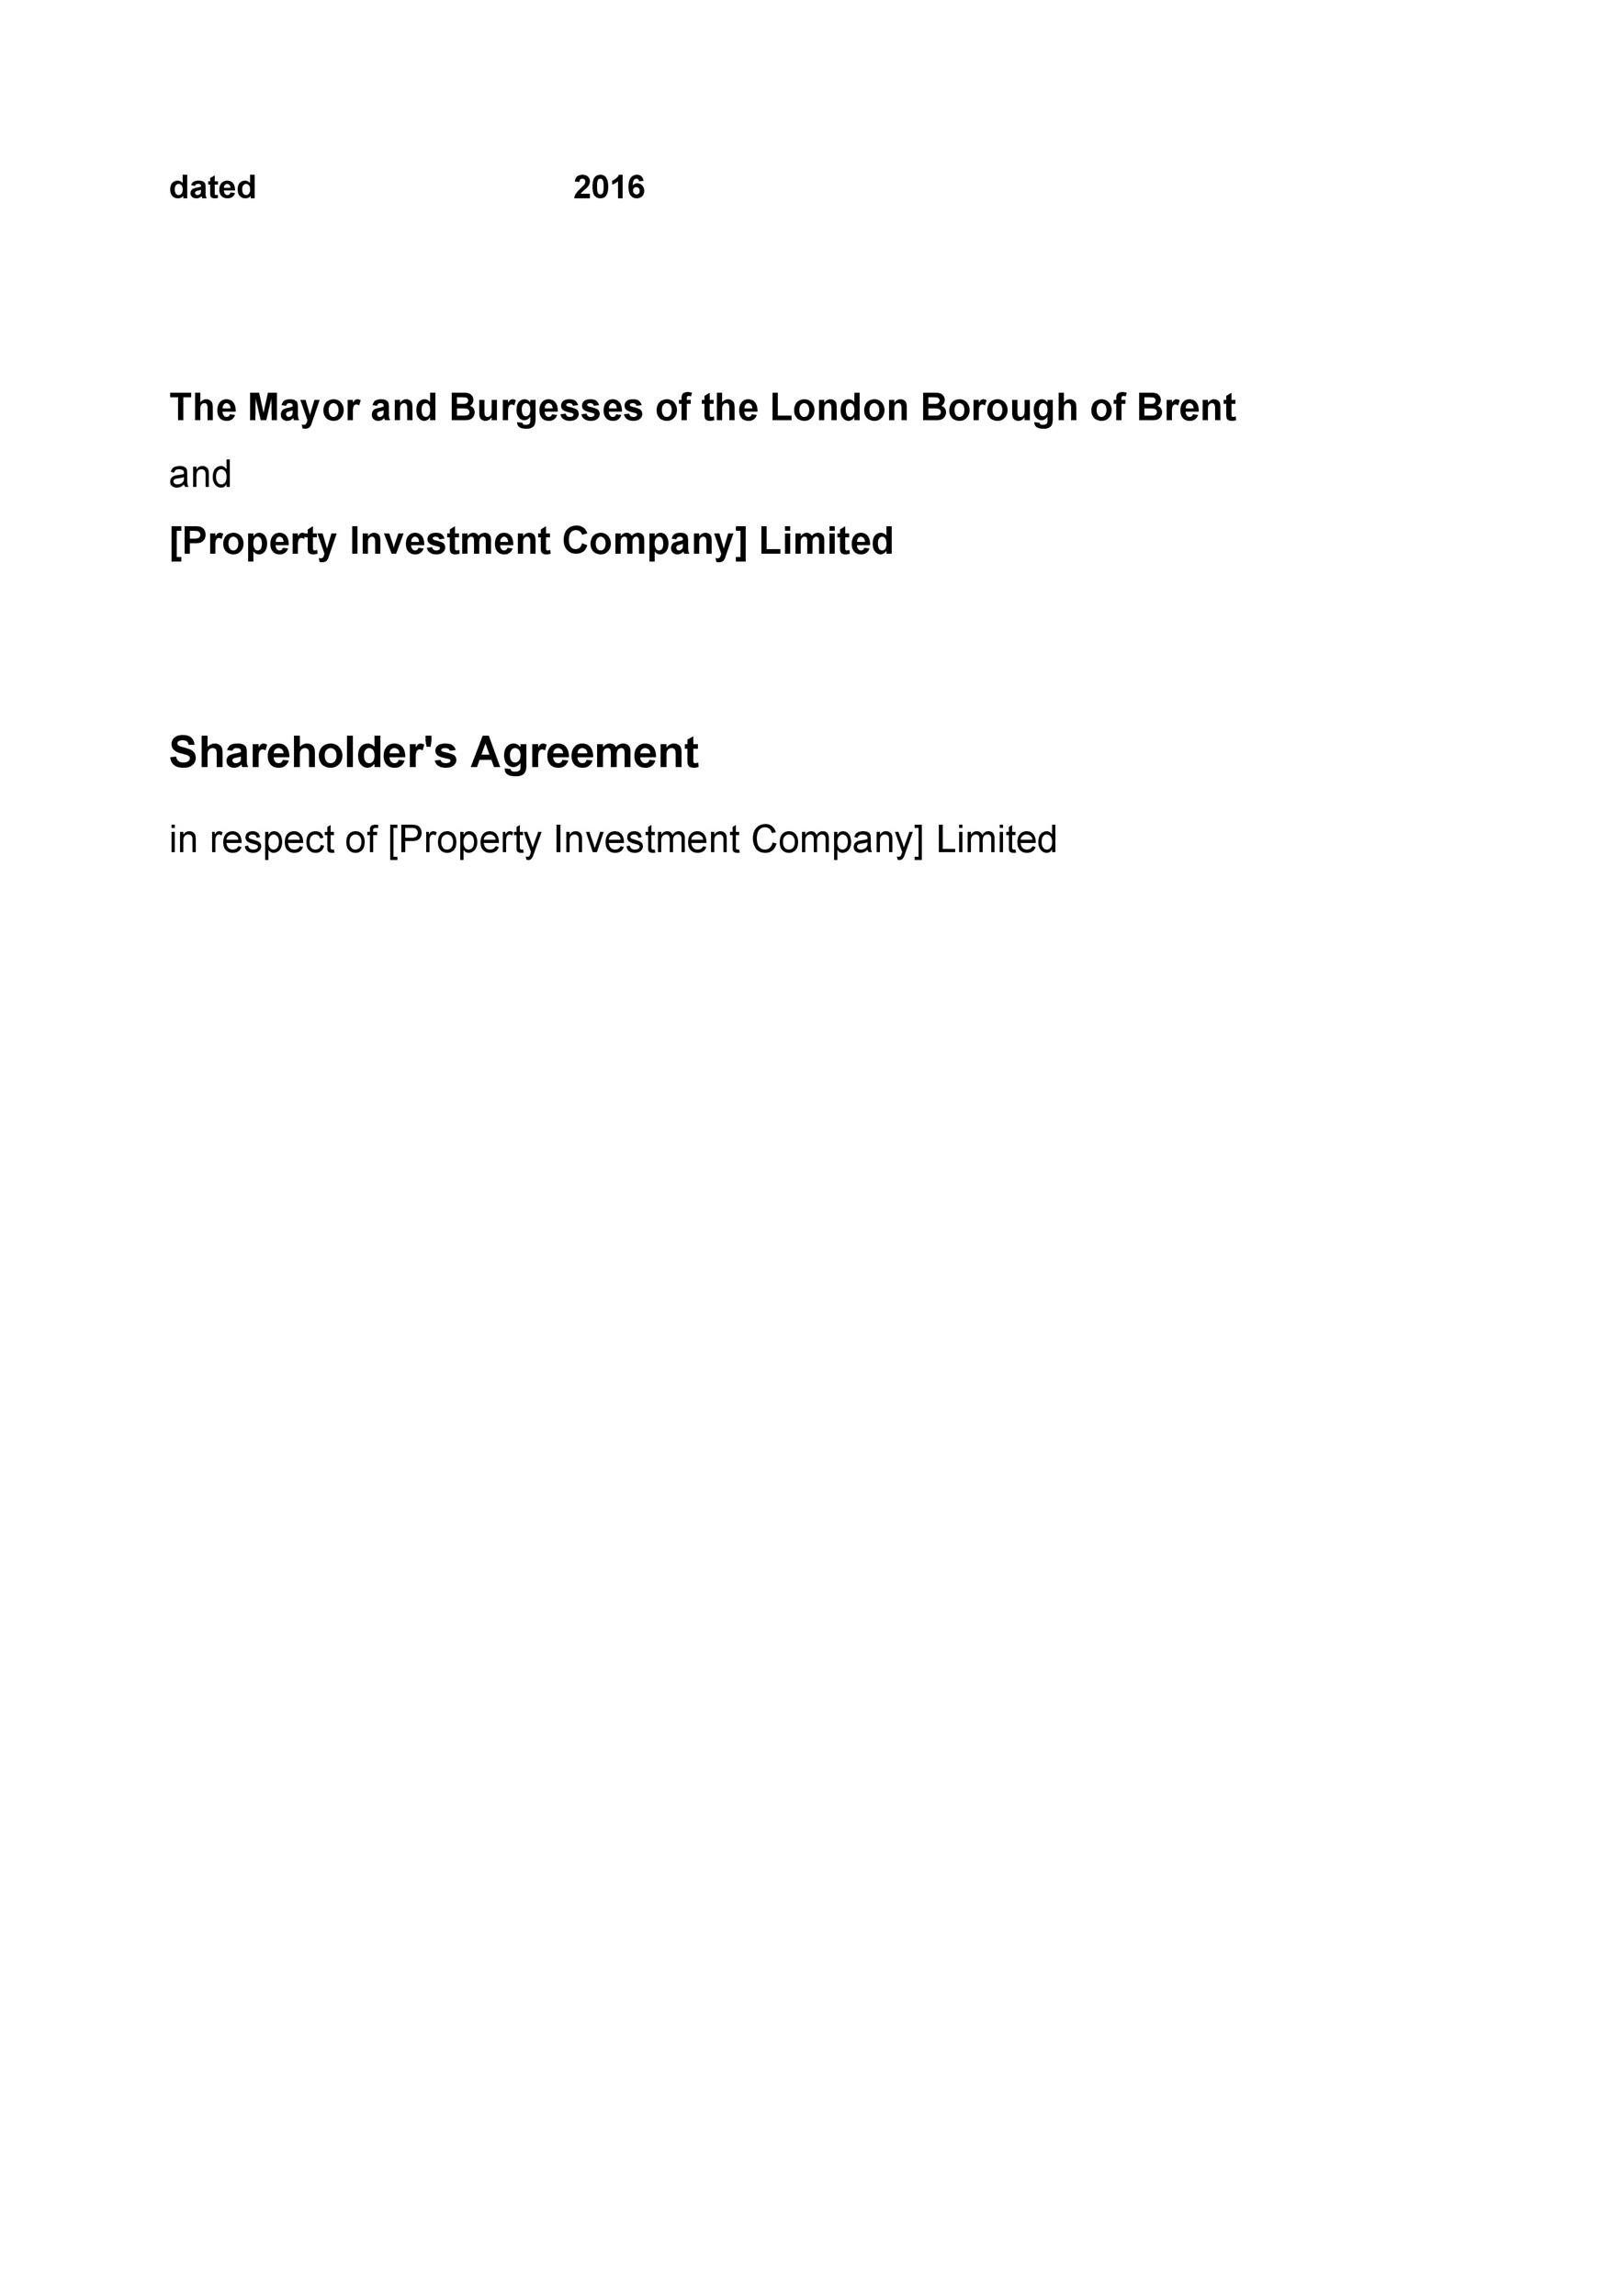 Free shareholder agreement 36